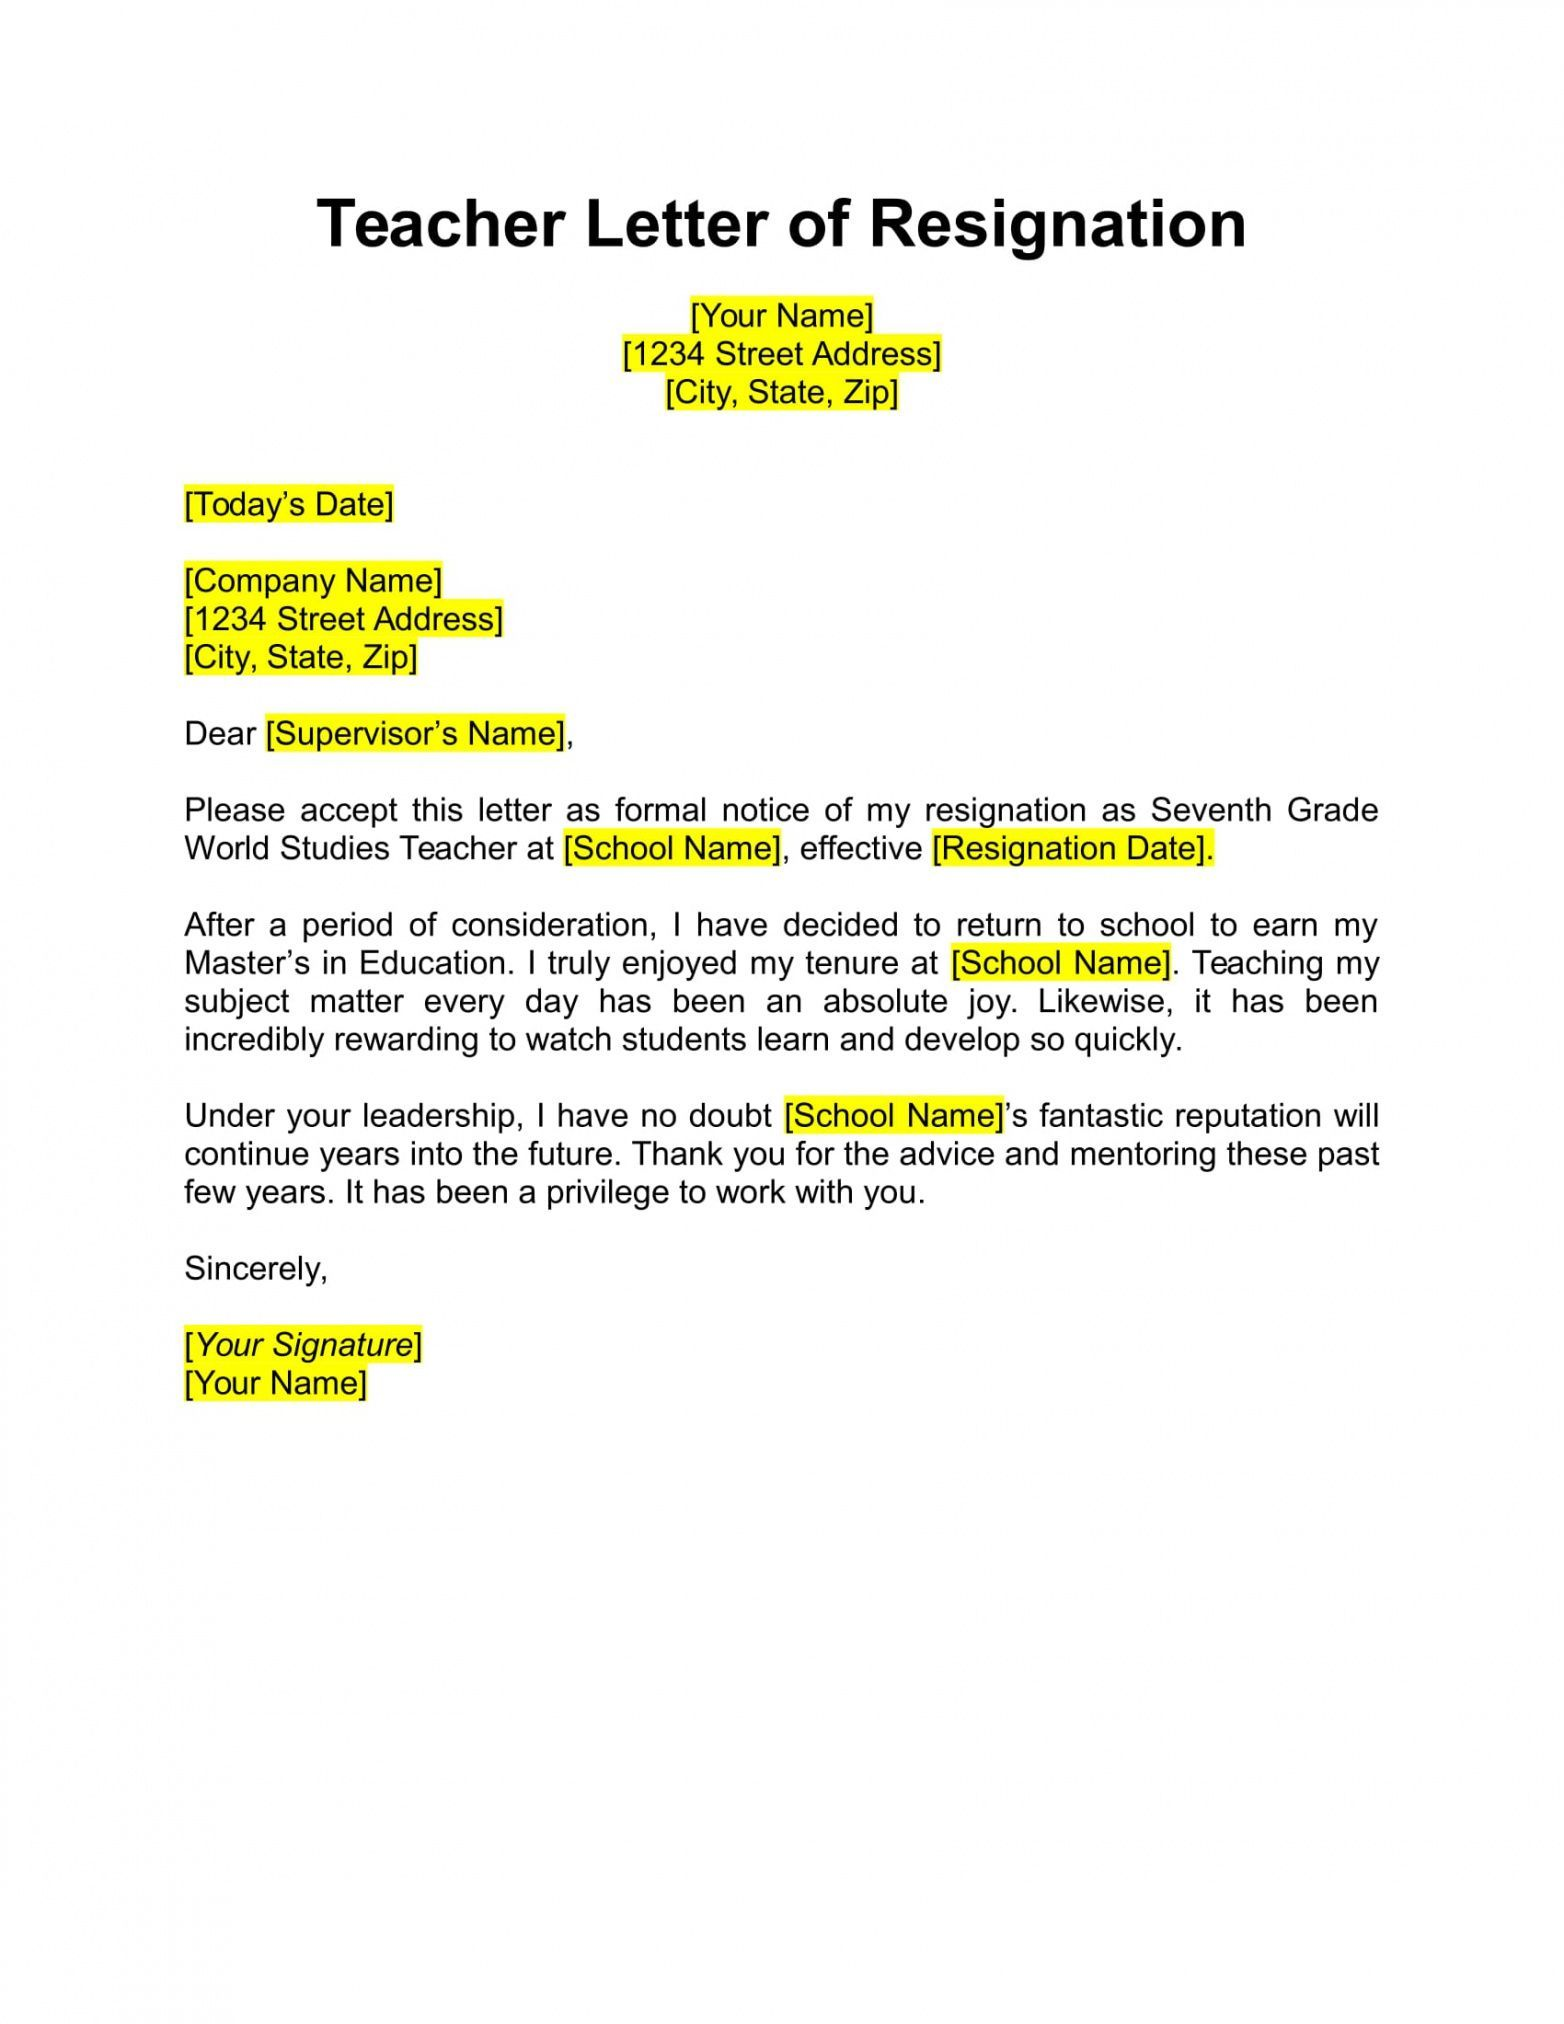 Explore Our Image of Nurse Leader Resignation Letter in